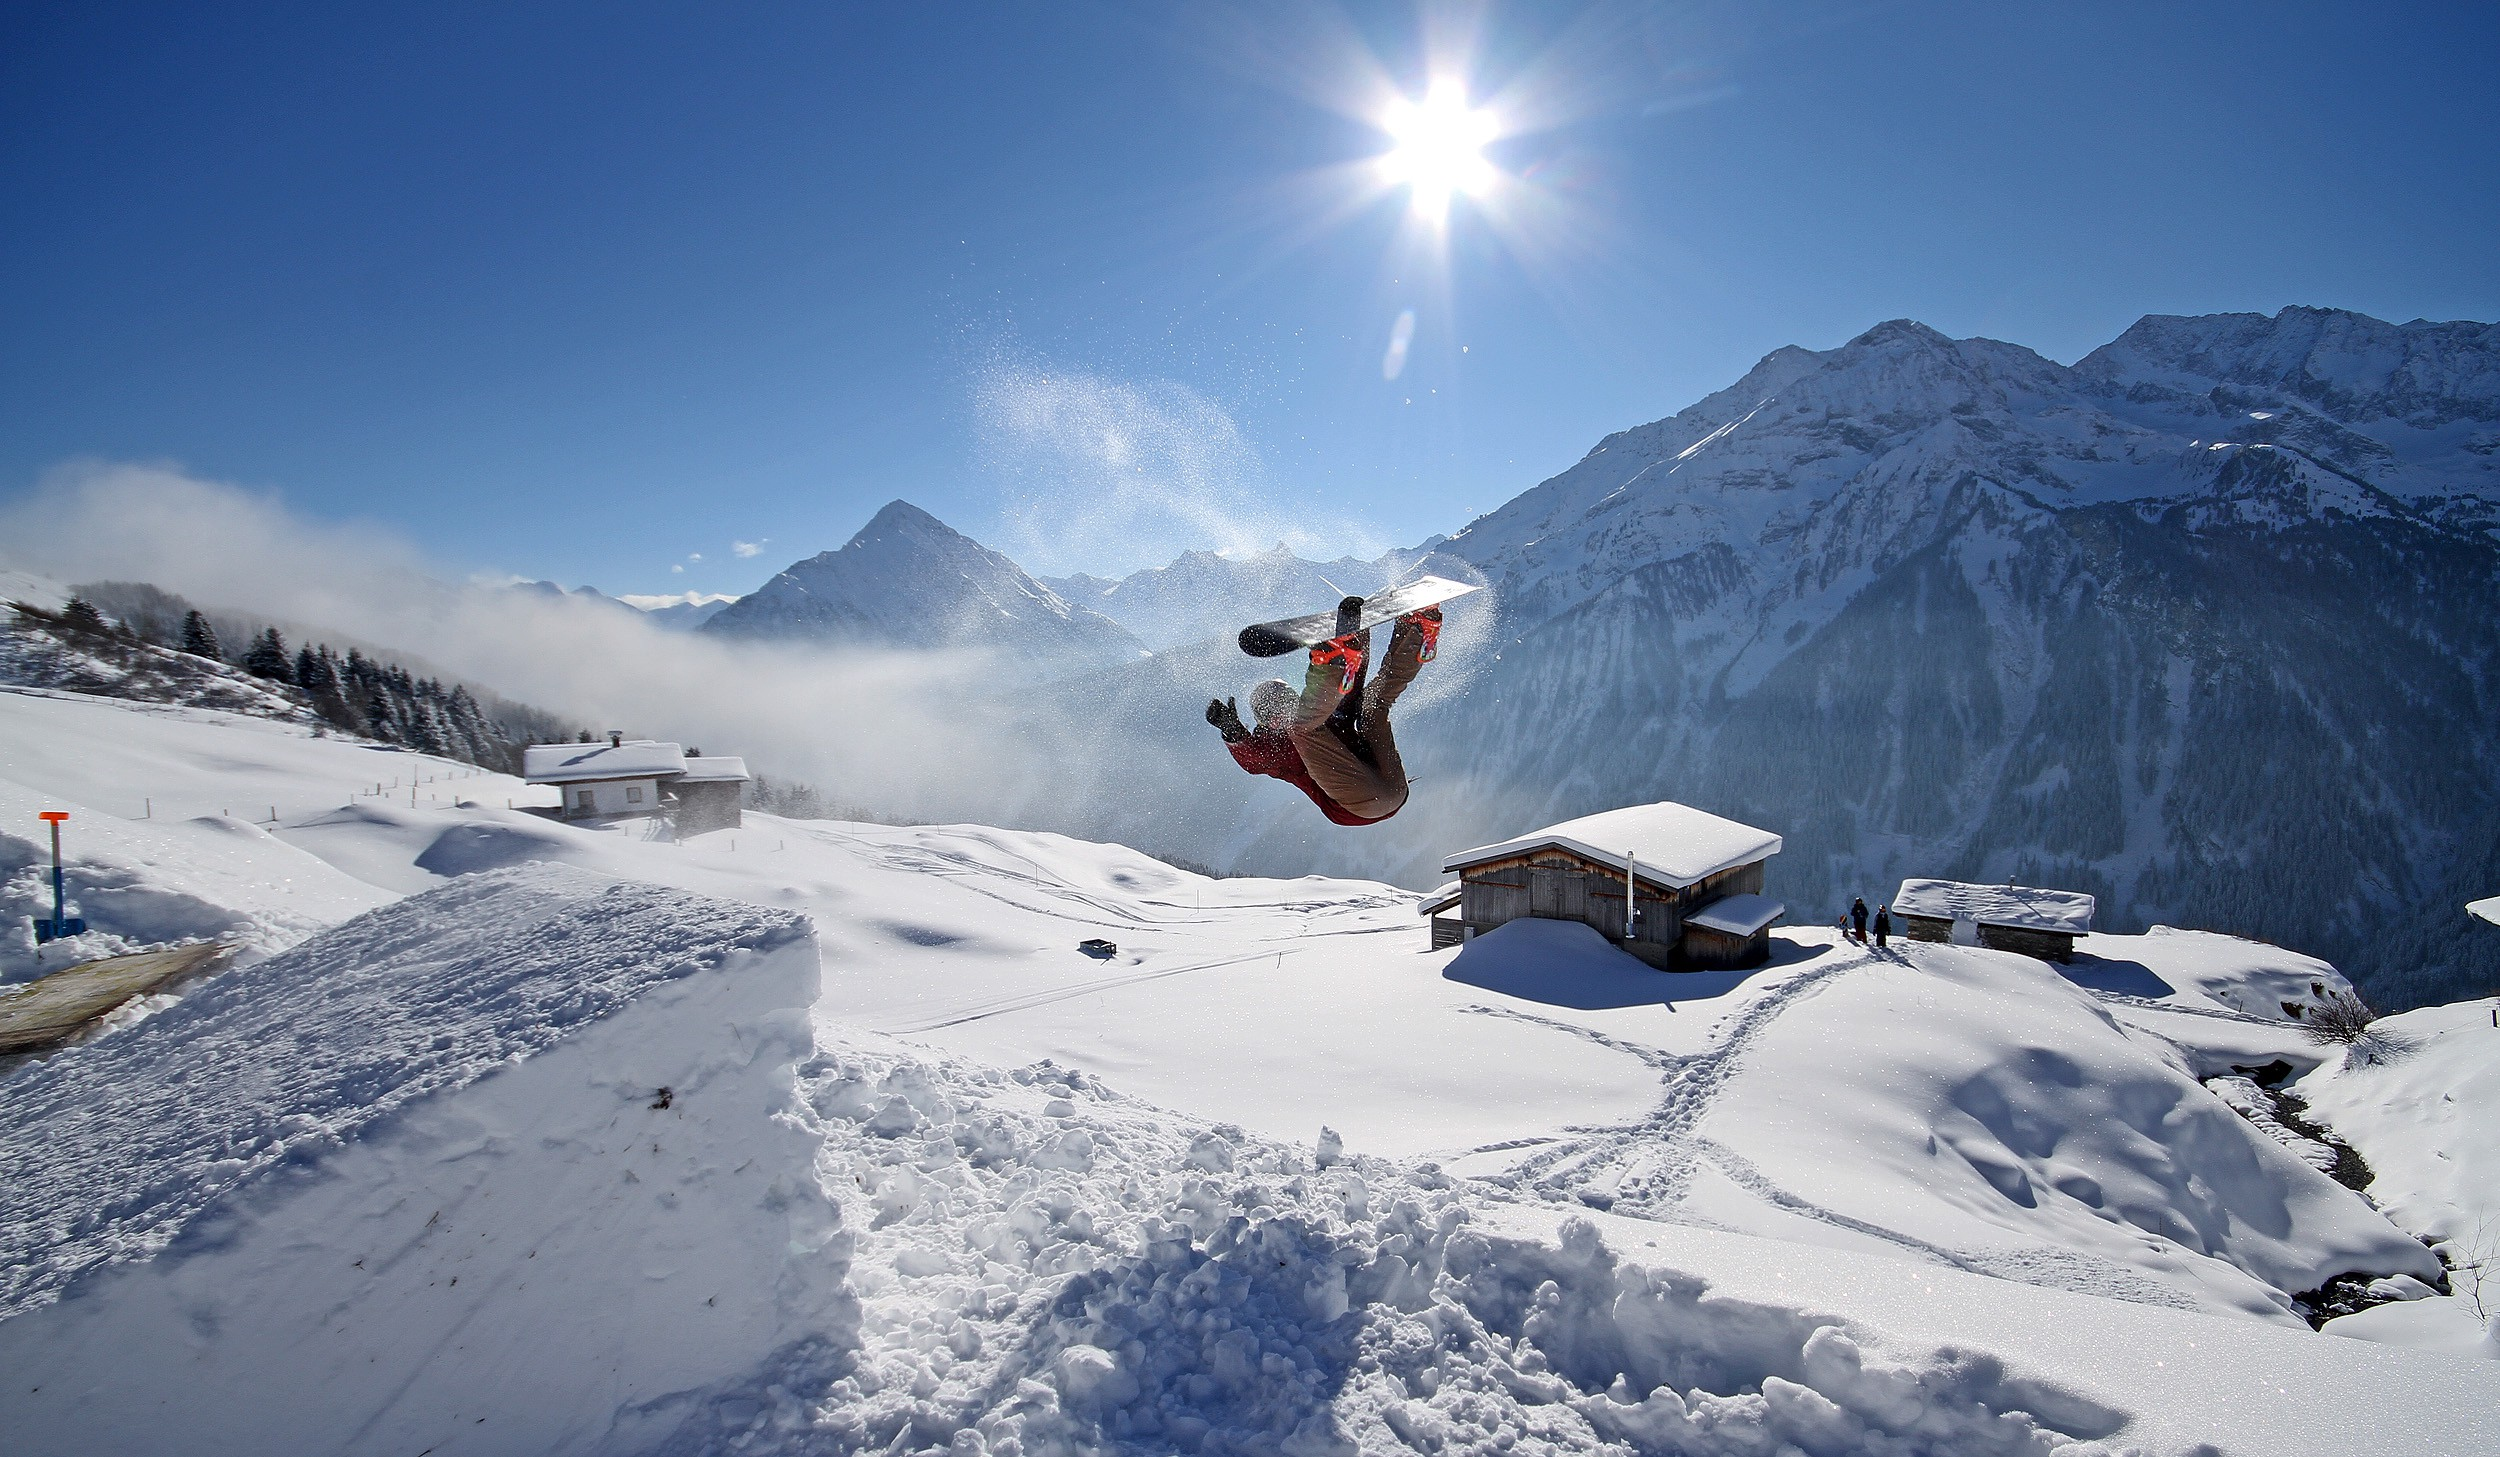 Comment faire un backflip en snowboard